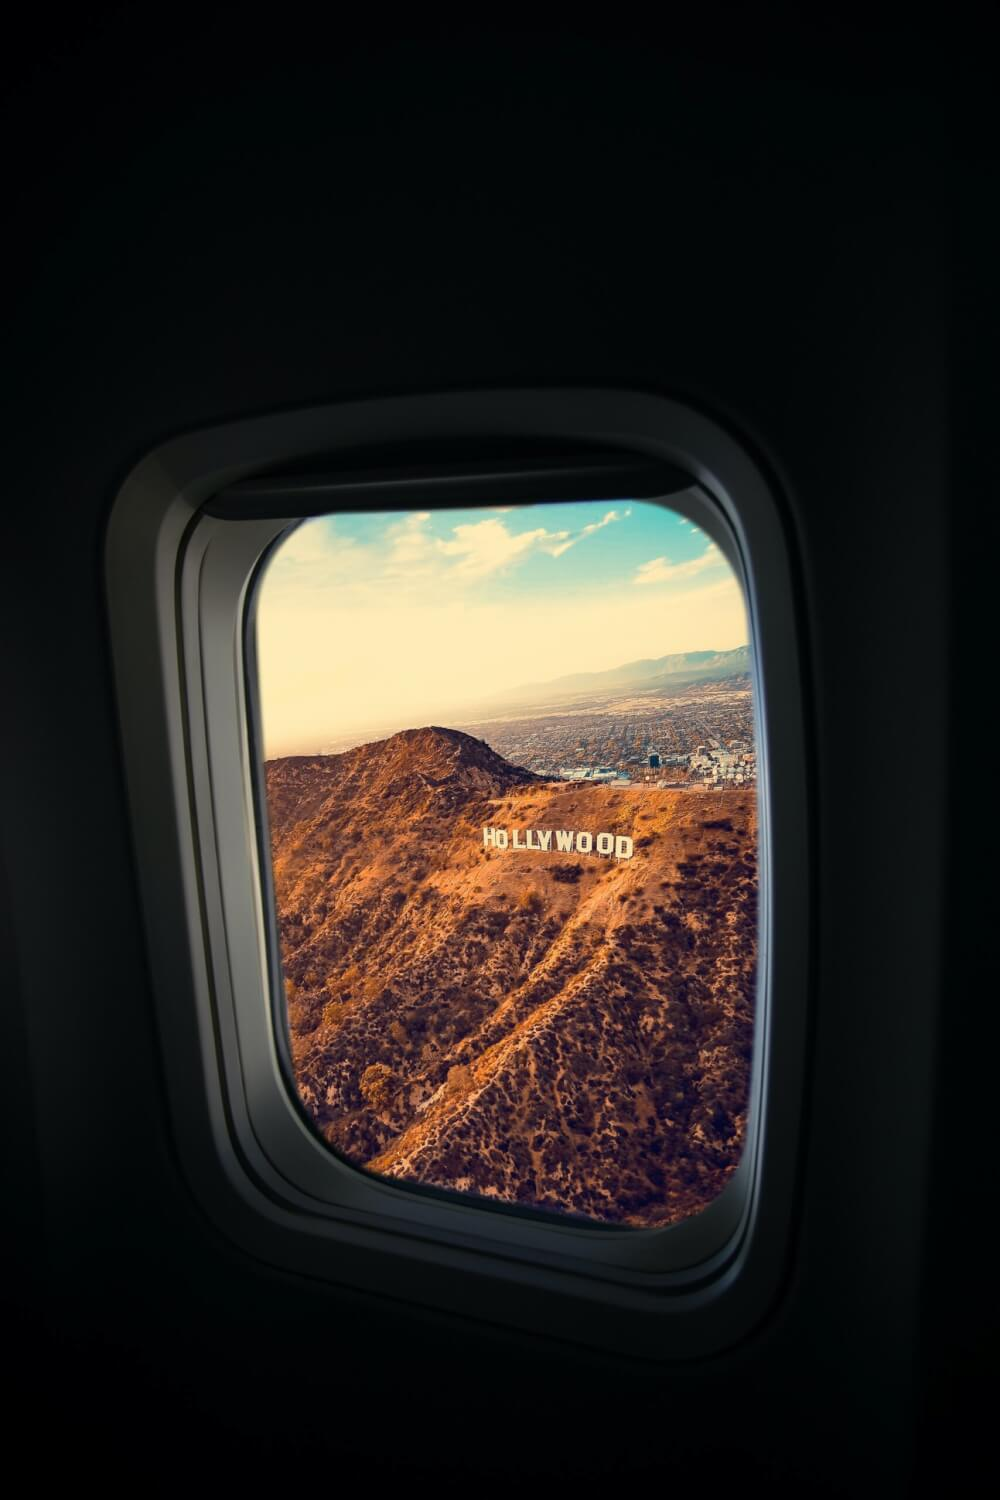 A view of the Hollywood sign from the airplane, positioned on a brown, arid hillside that's sparsely vegetated.